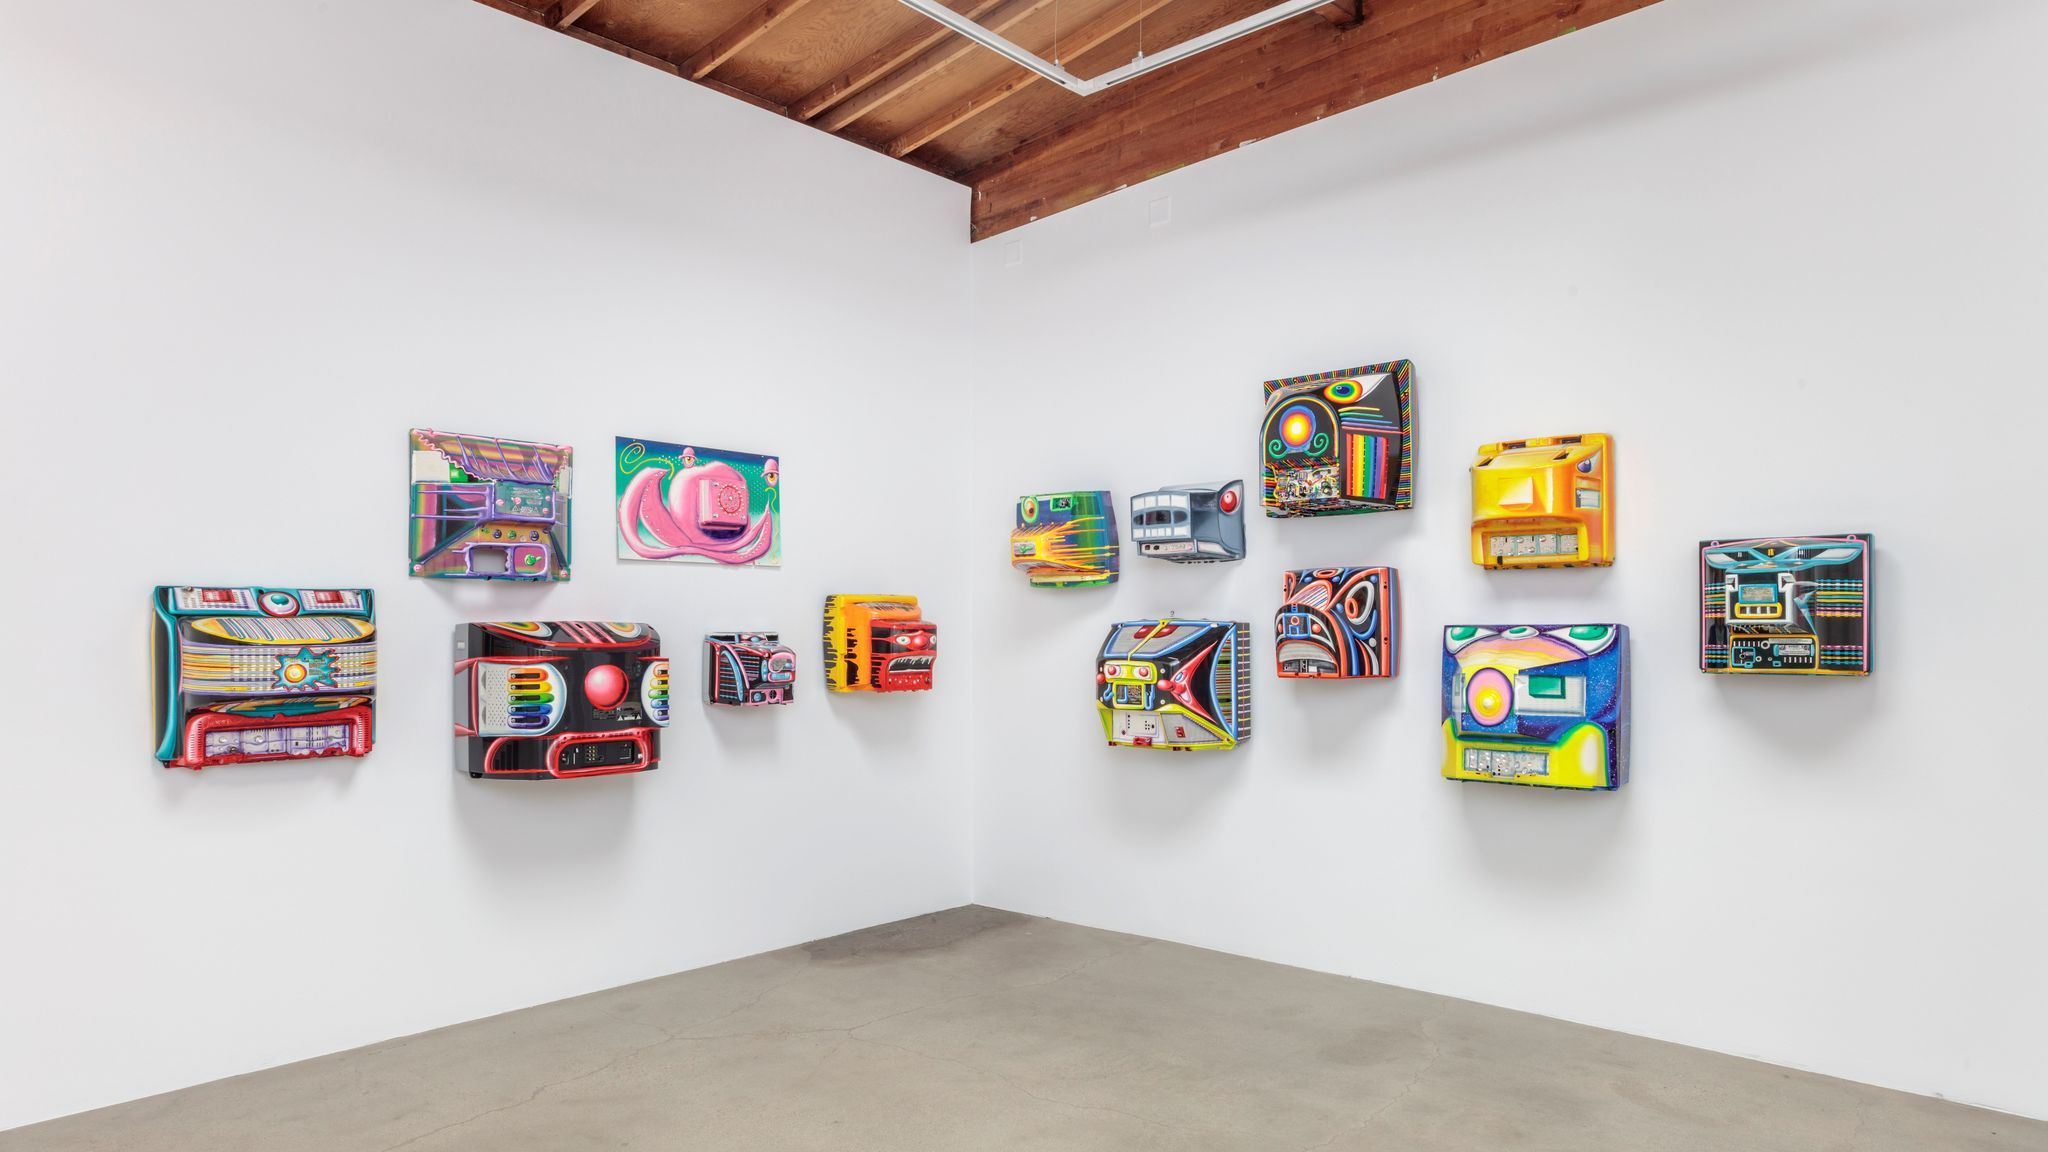 """Installation view of Kenny Scharf's """"Blox and Bax"""" at Honor Fraser."""